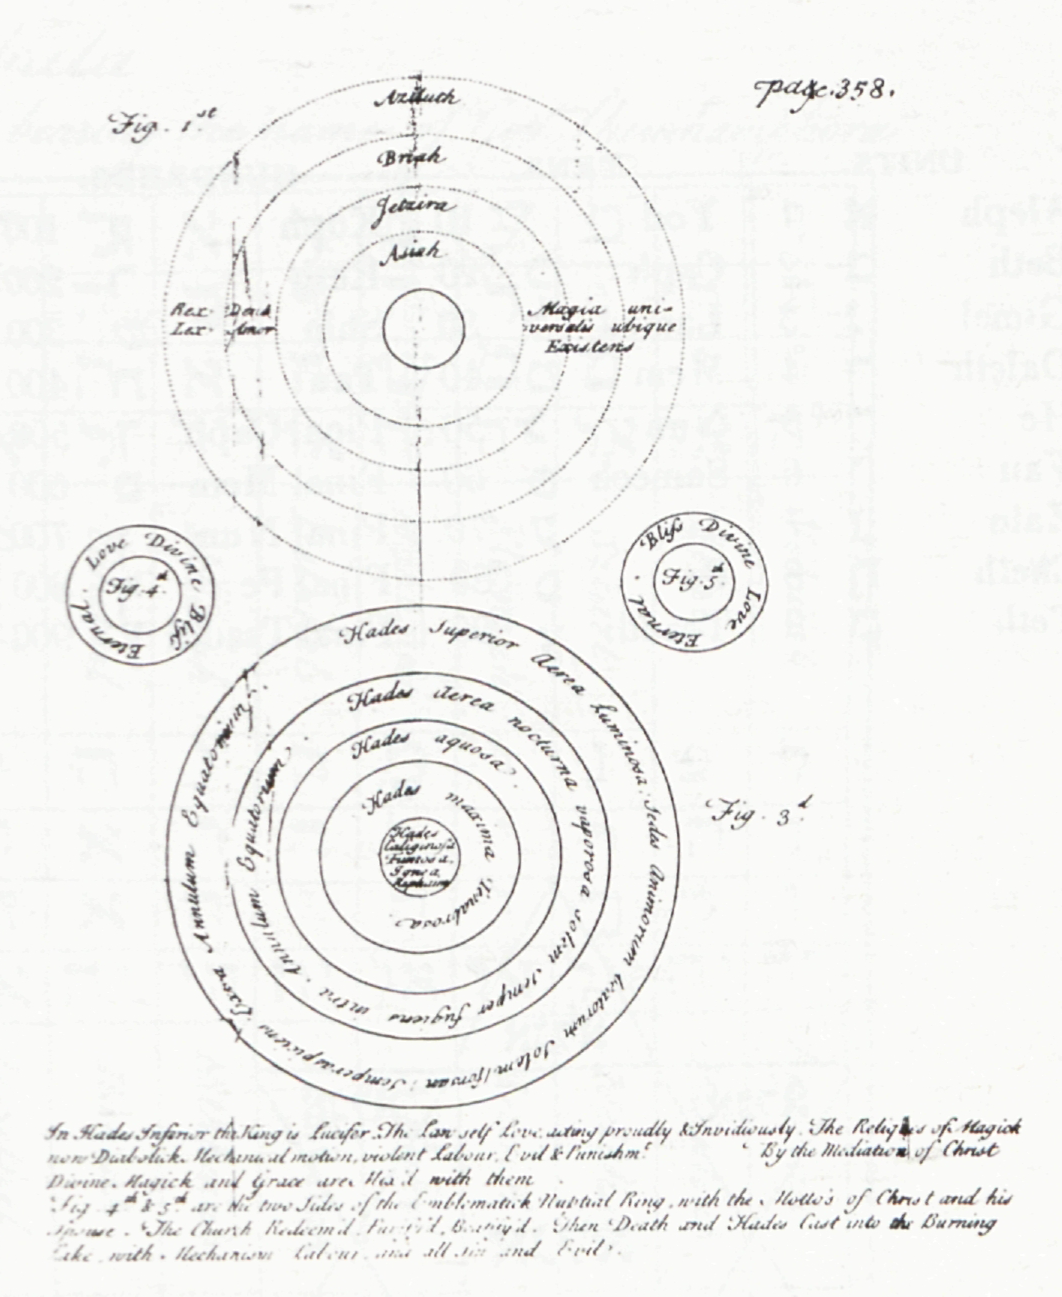 Kabbalistic Sources—Blake's and His Critics' | Sheila